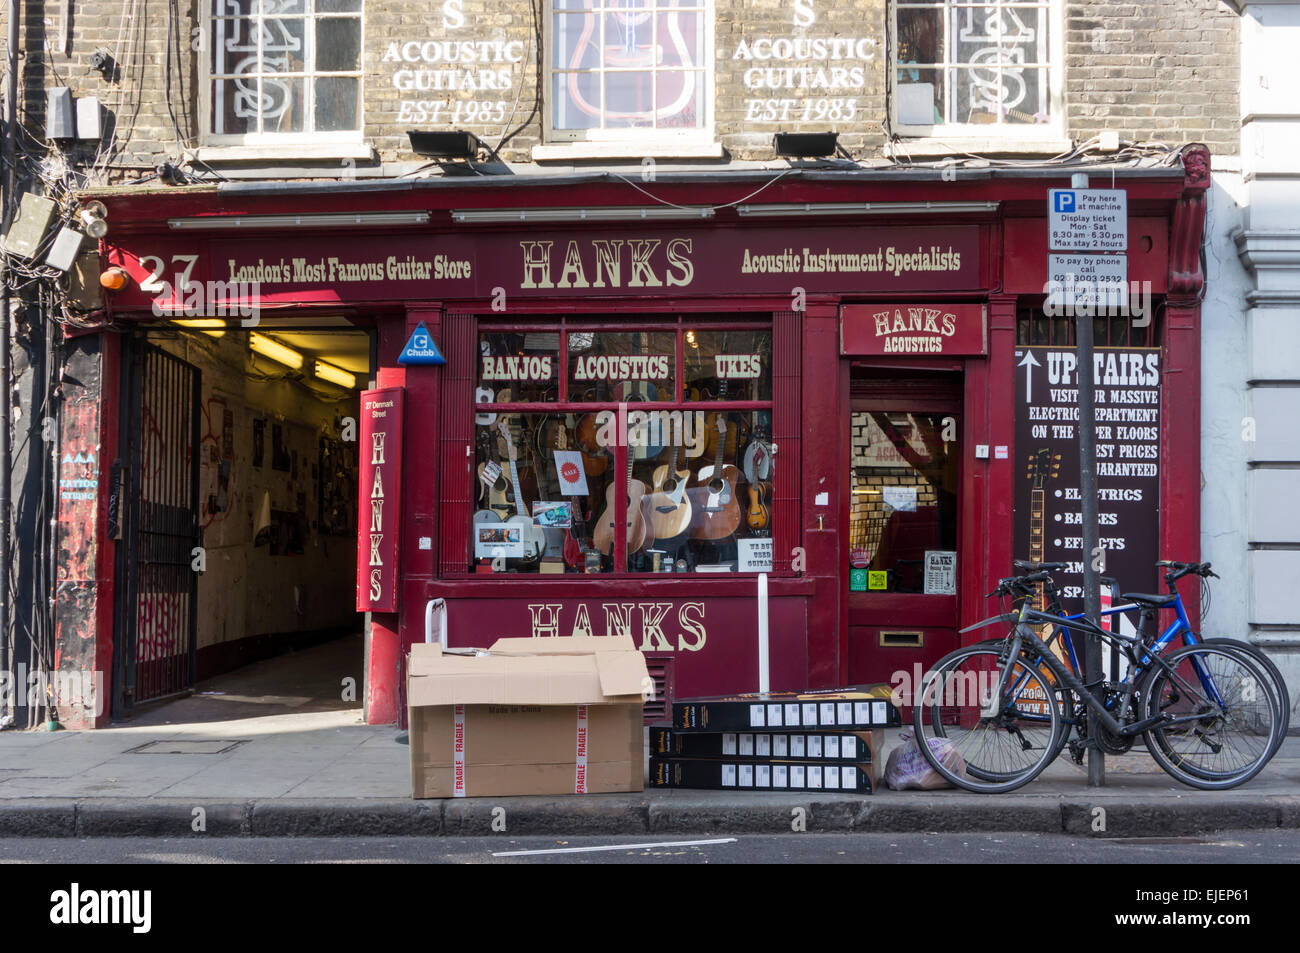 Hanks Guitar Shop in Denmark Street in the West End of Central London. - Stock Image